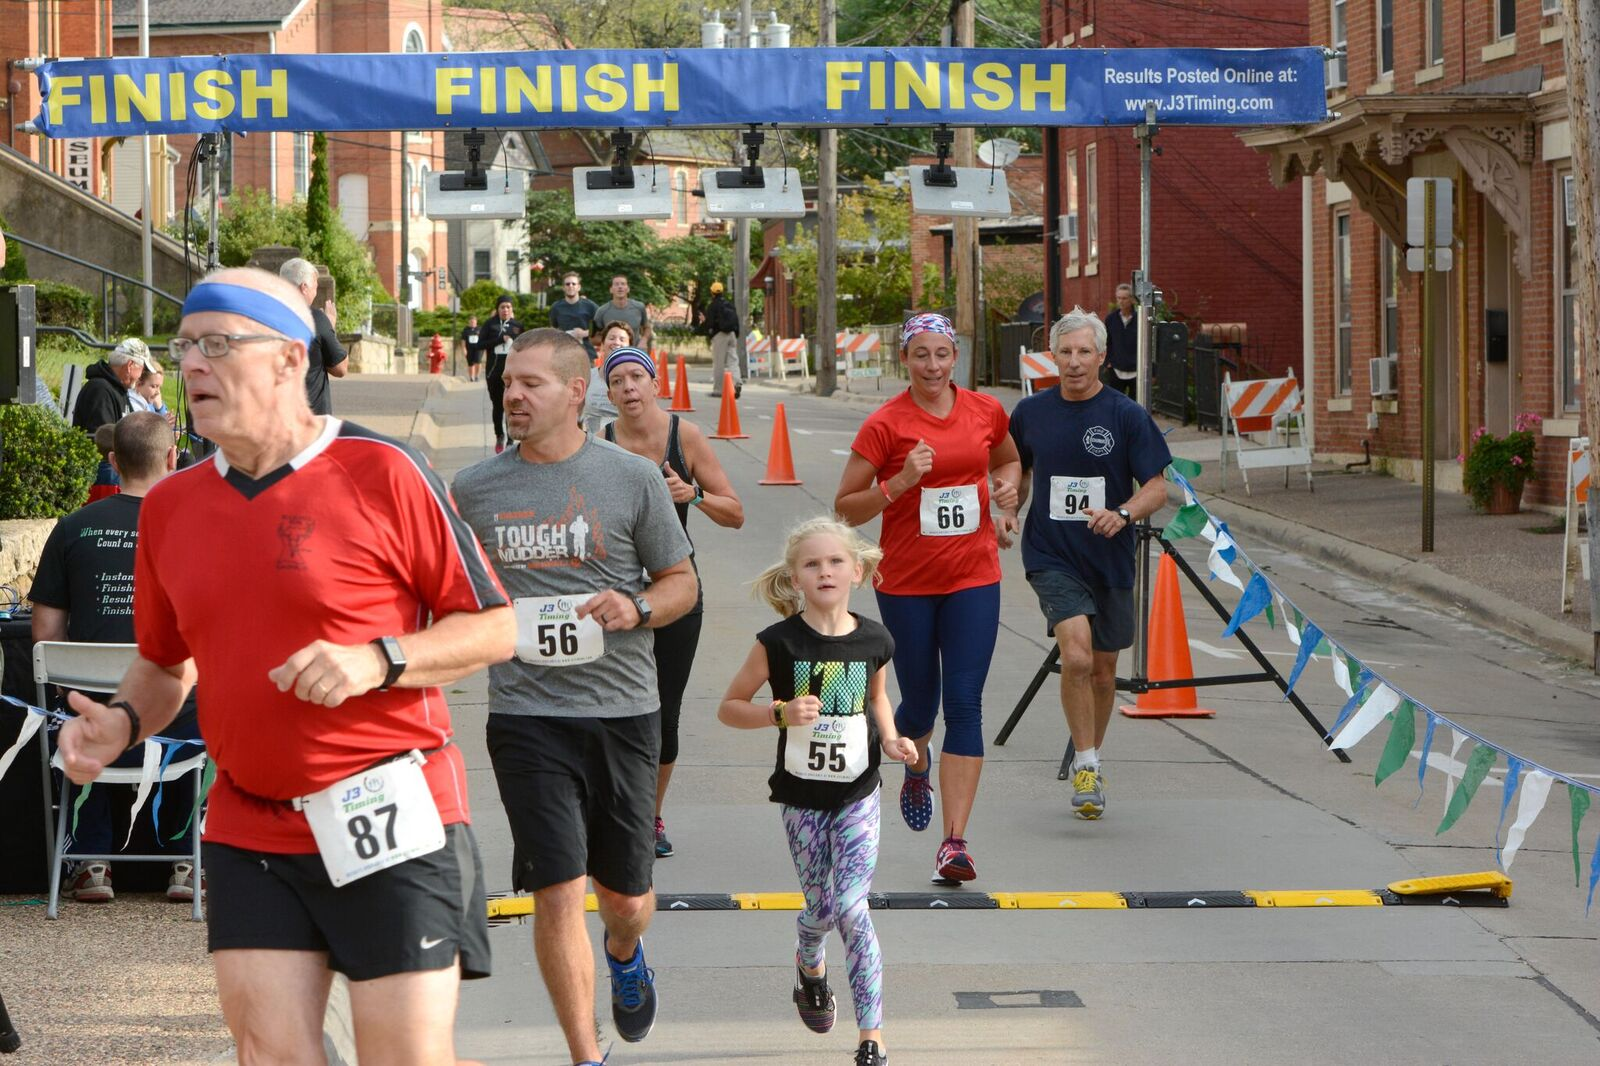 Heroes for History 5k honors 9/11 and local first responders